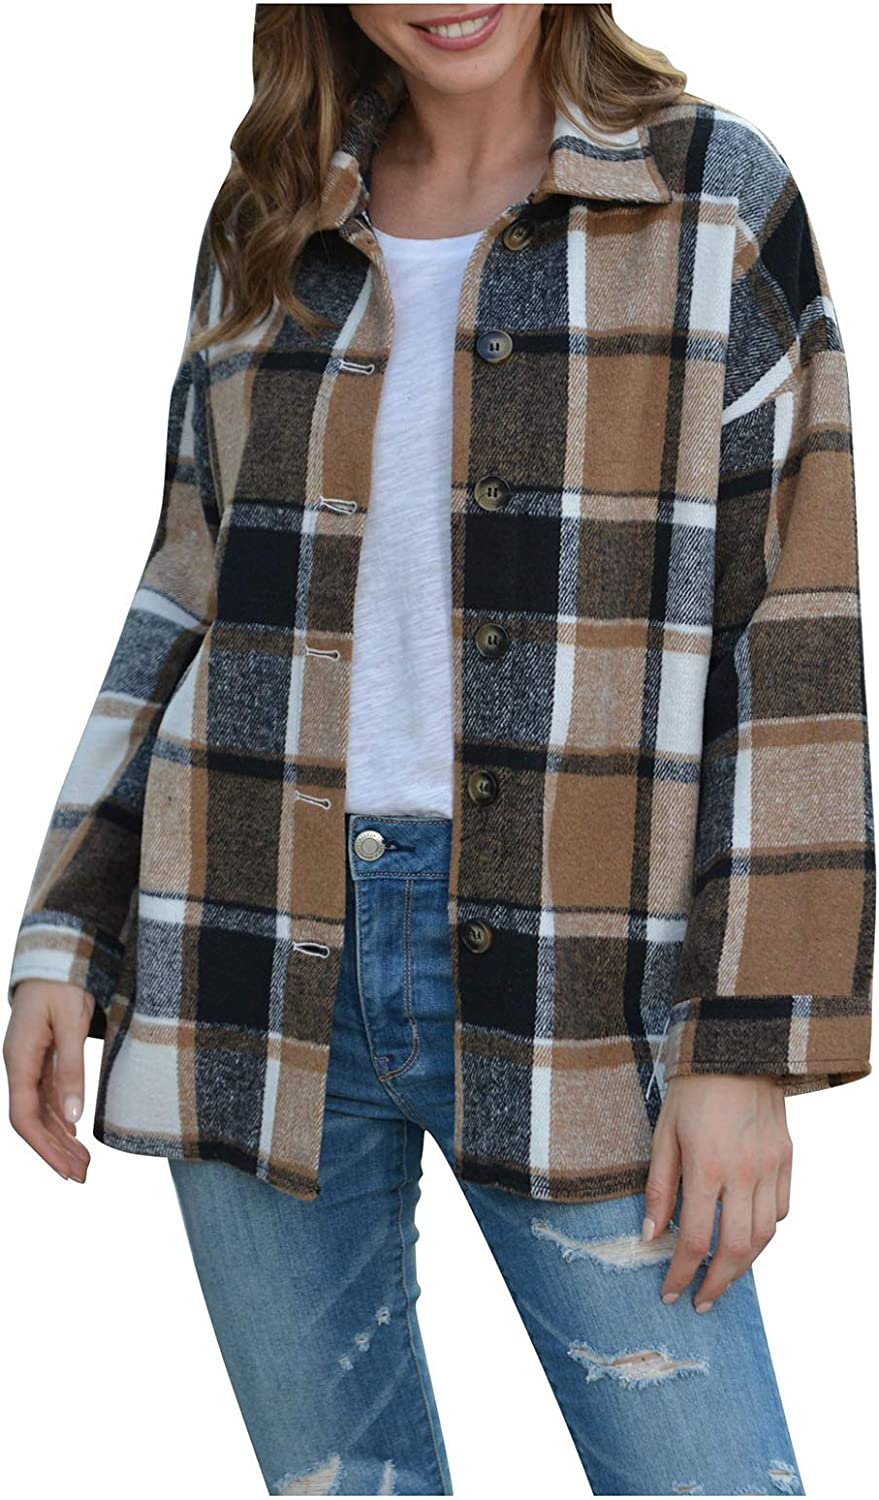 Forwelly Women Fall Winter Plus Size Overcoat Classic Plaid Long Sleeve Jacket Casual Coat